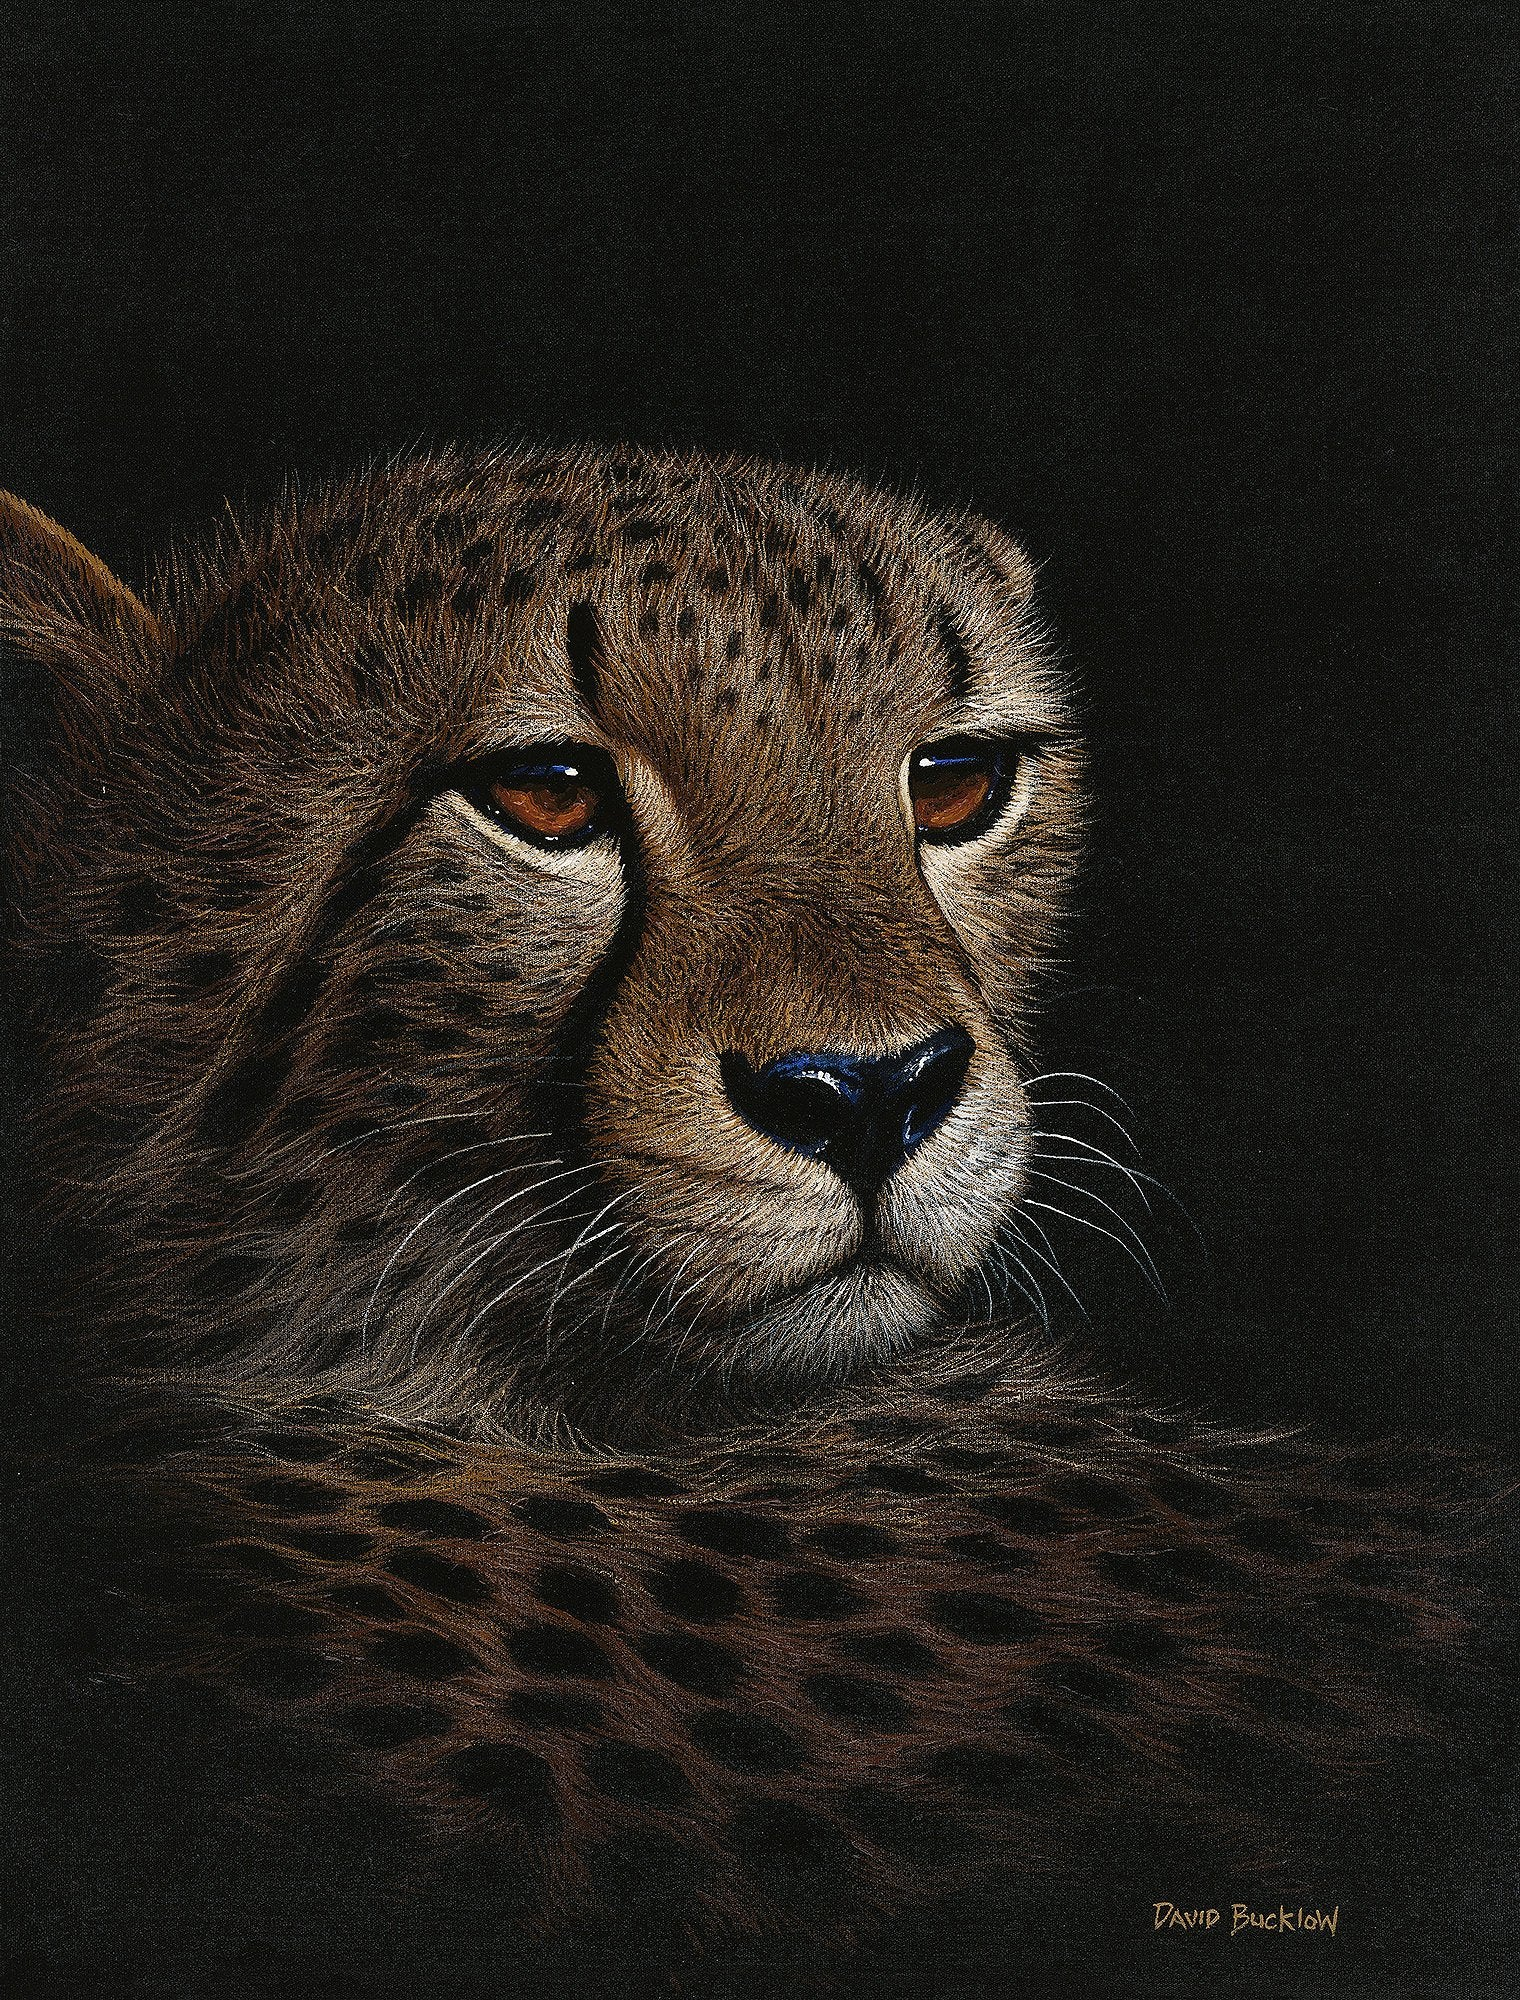 Cheetah Print by David Bucklow of a Cheetah at Night